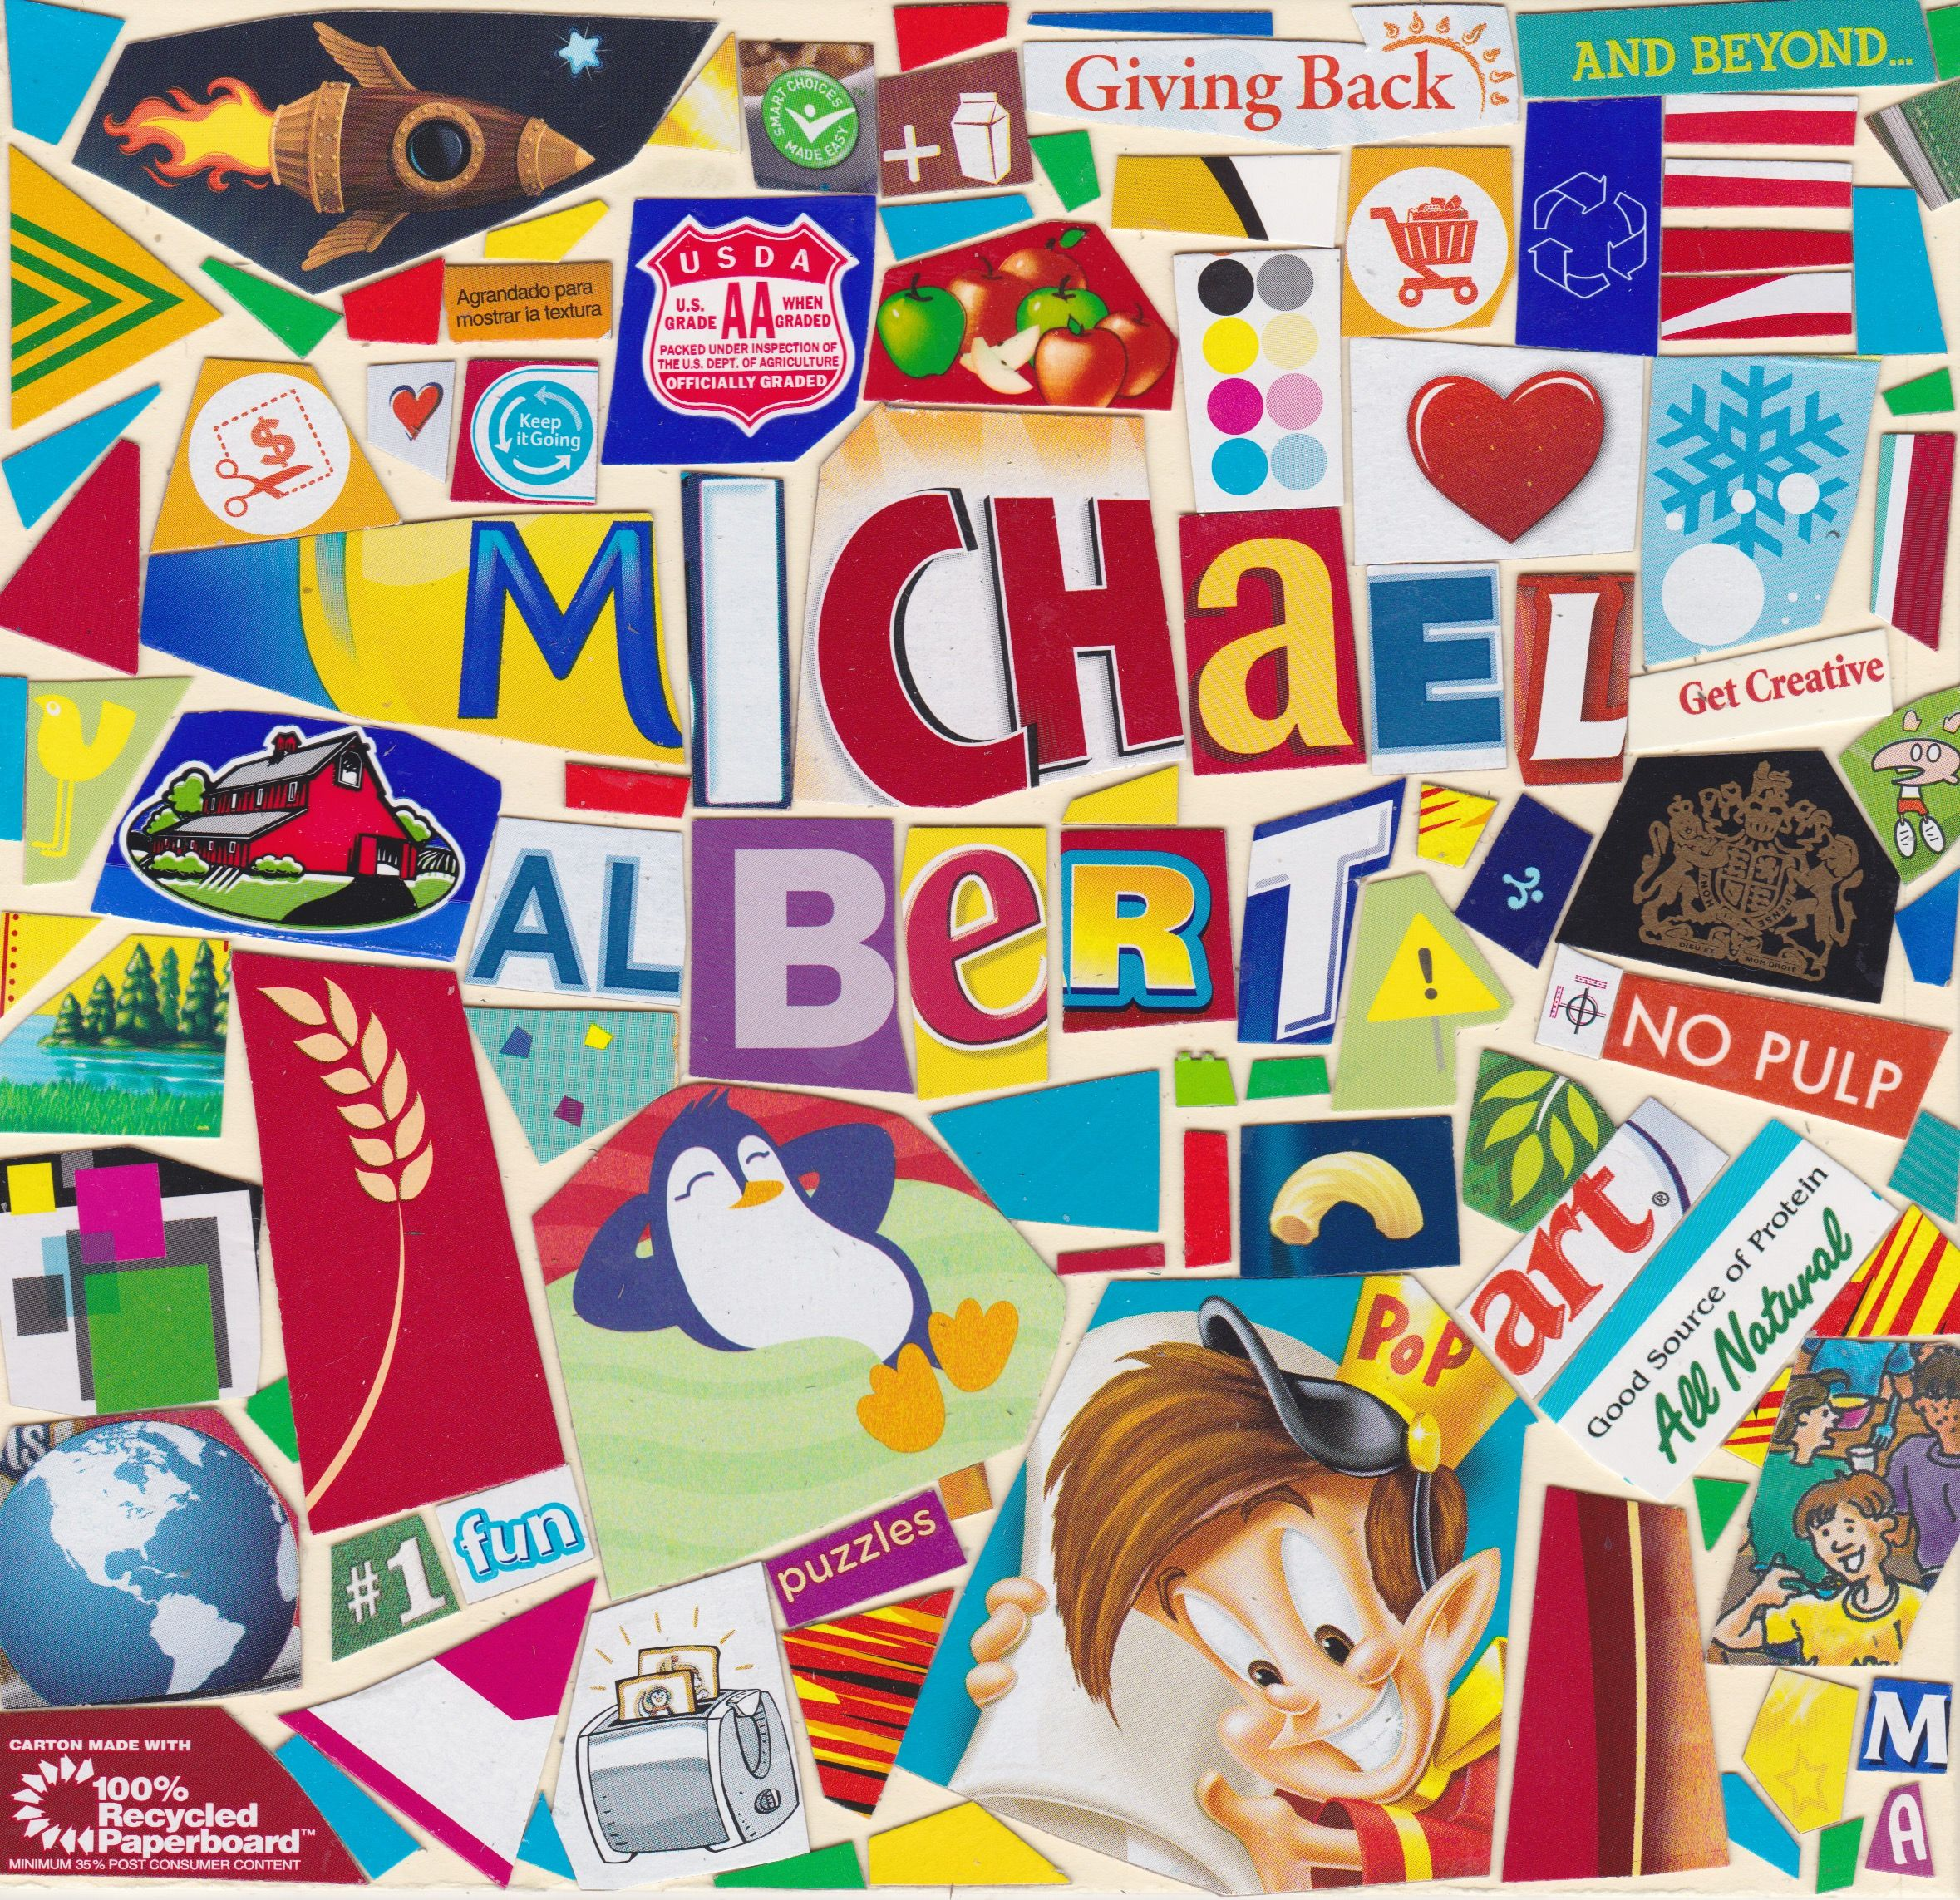 Name Collage 2016 Modern pop art, Pop art, Fun puzzles